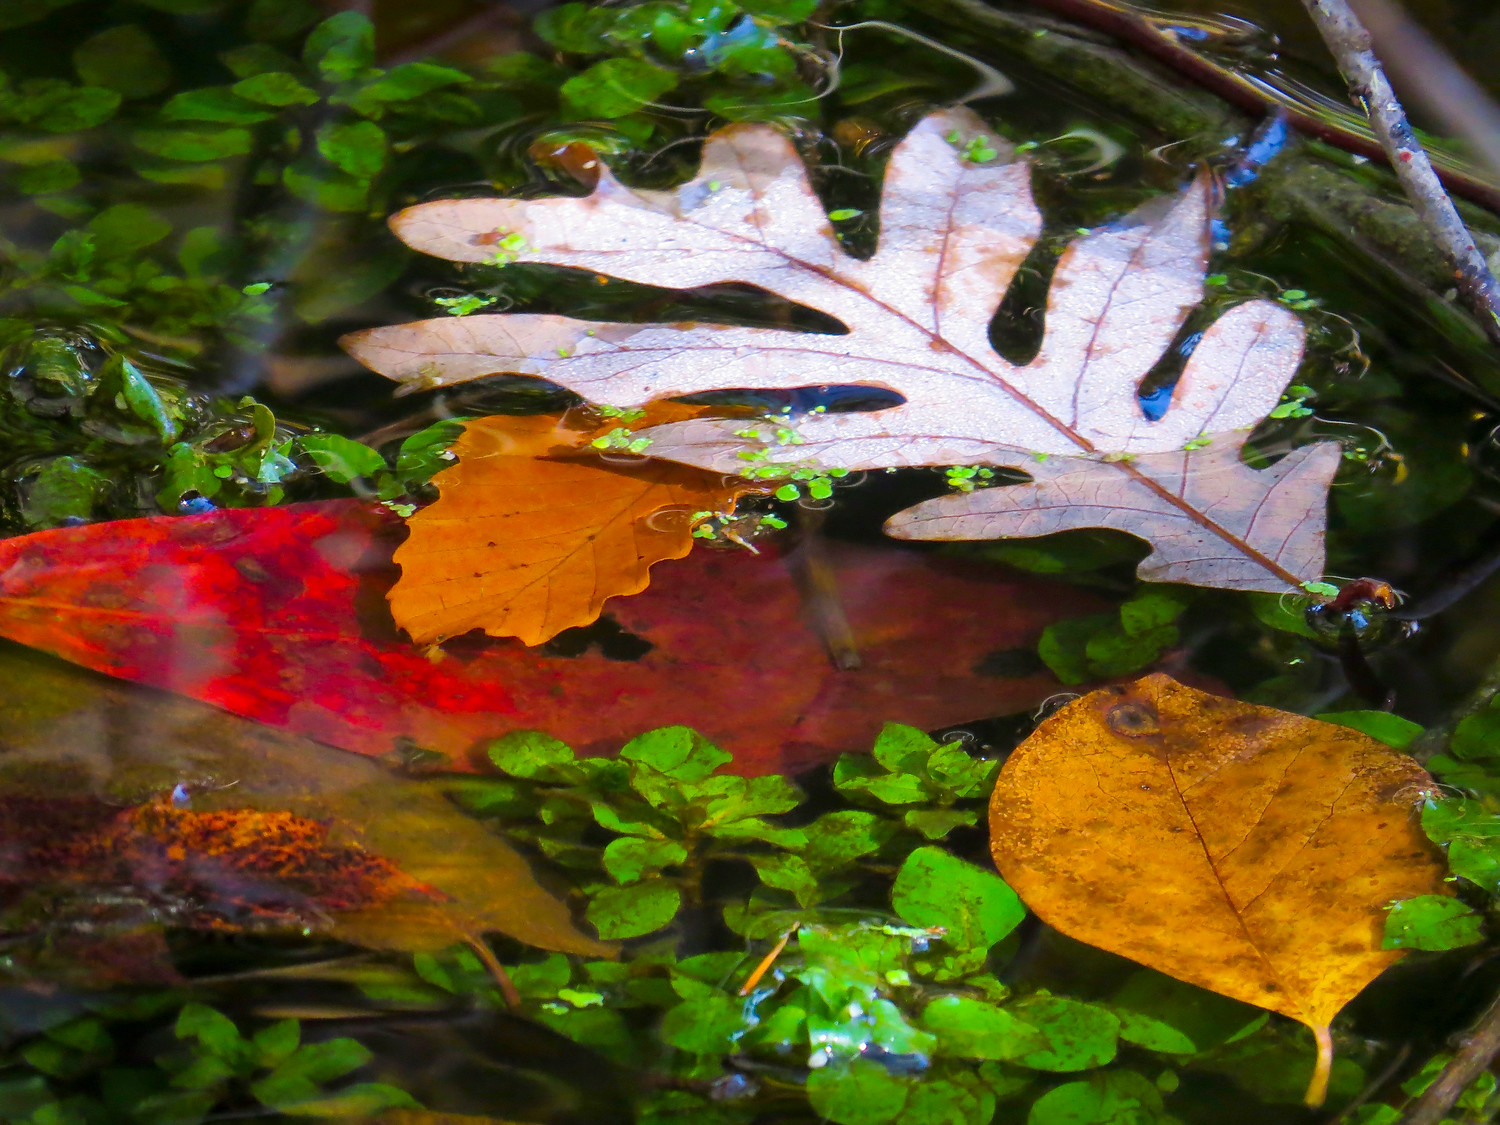 Leaves from the many different trees at Bailey Arboretum have been discarded into the water off Turtle Island.